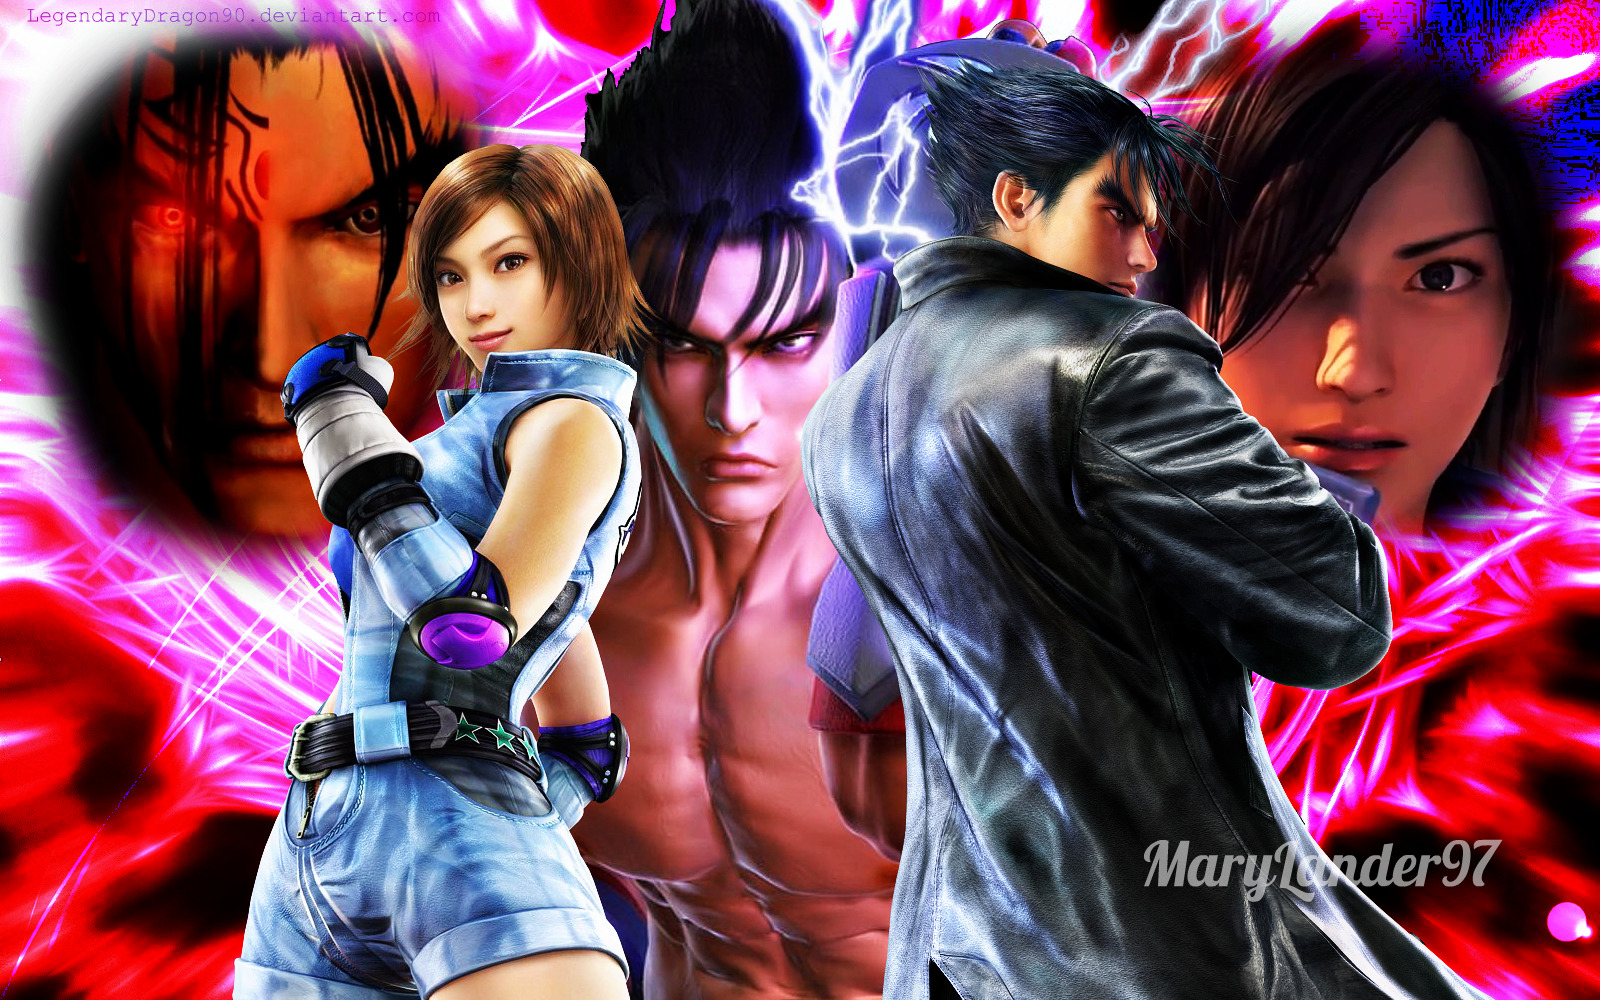 tekken jin and asuka relationship problems